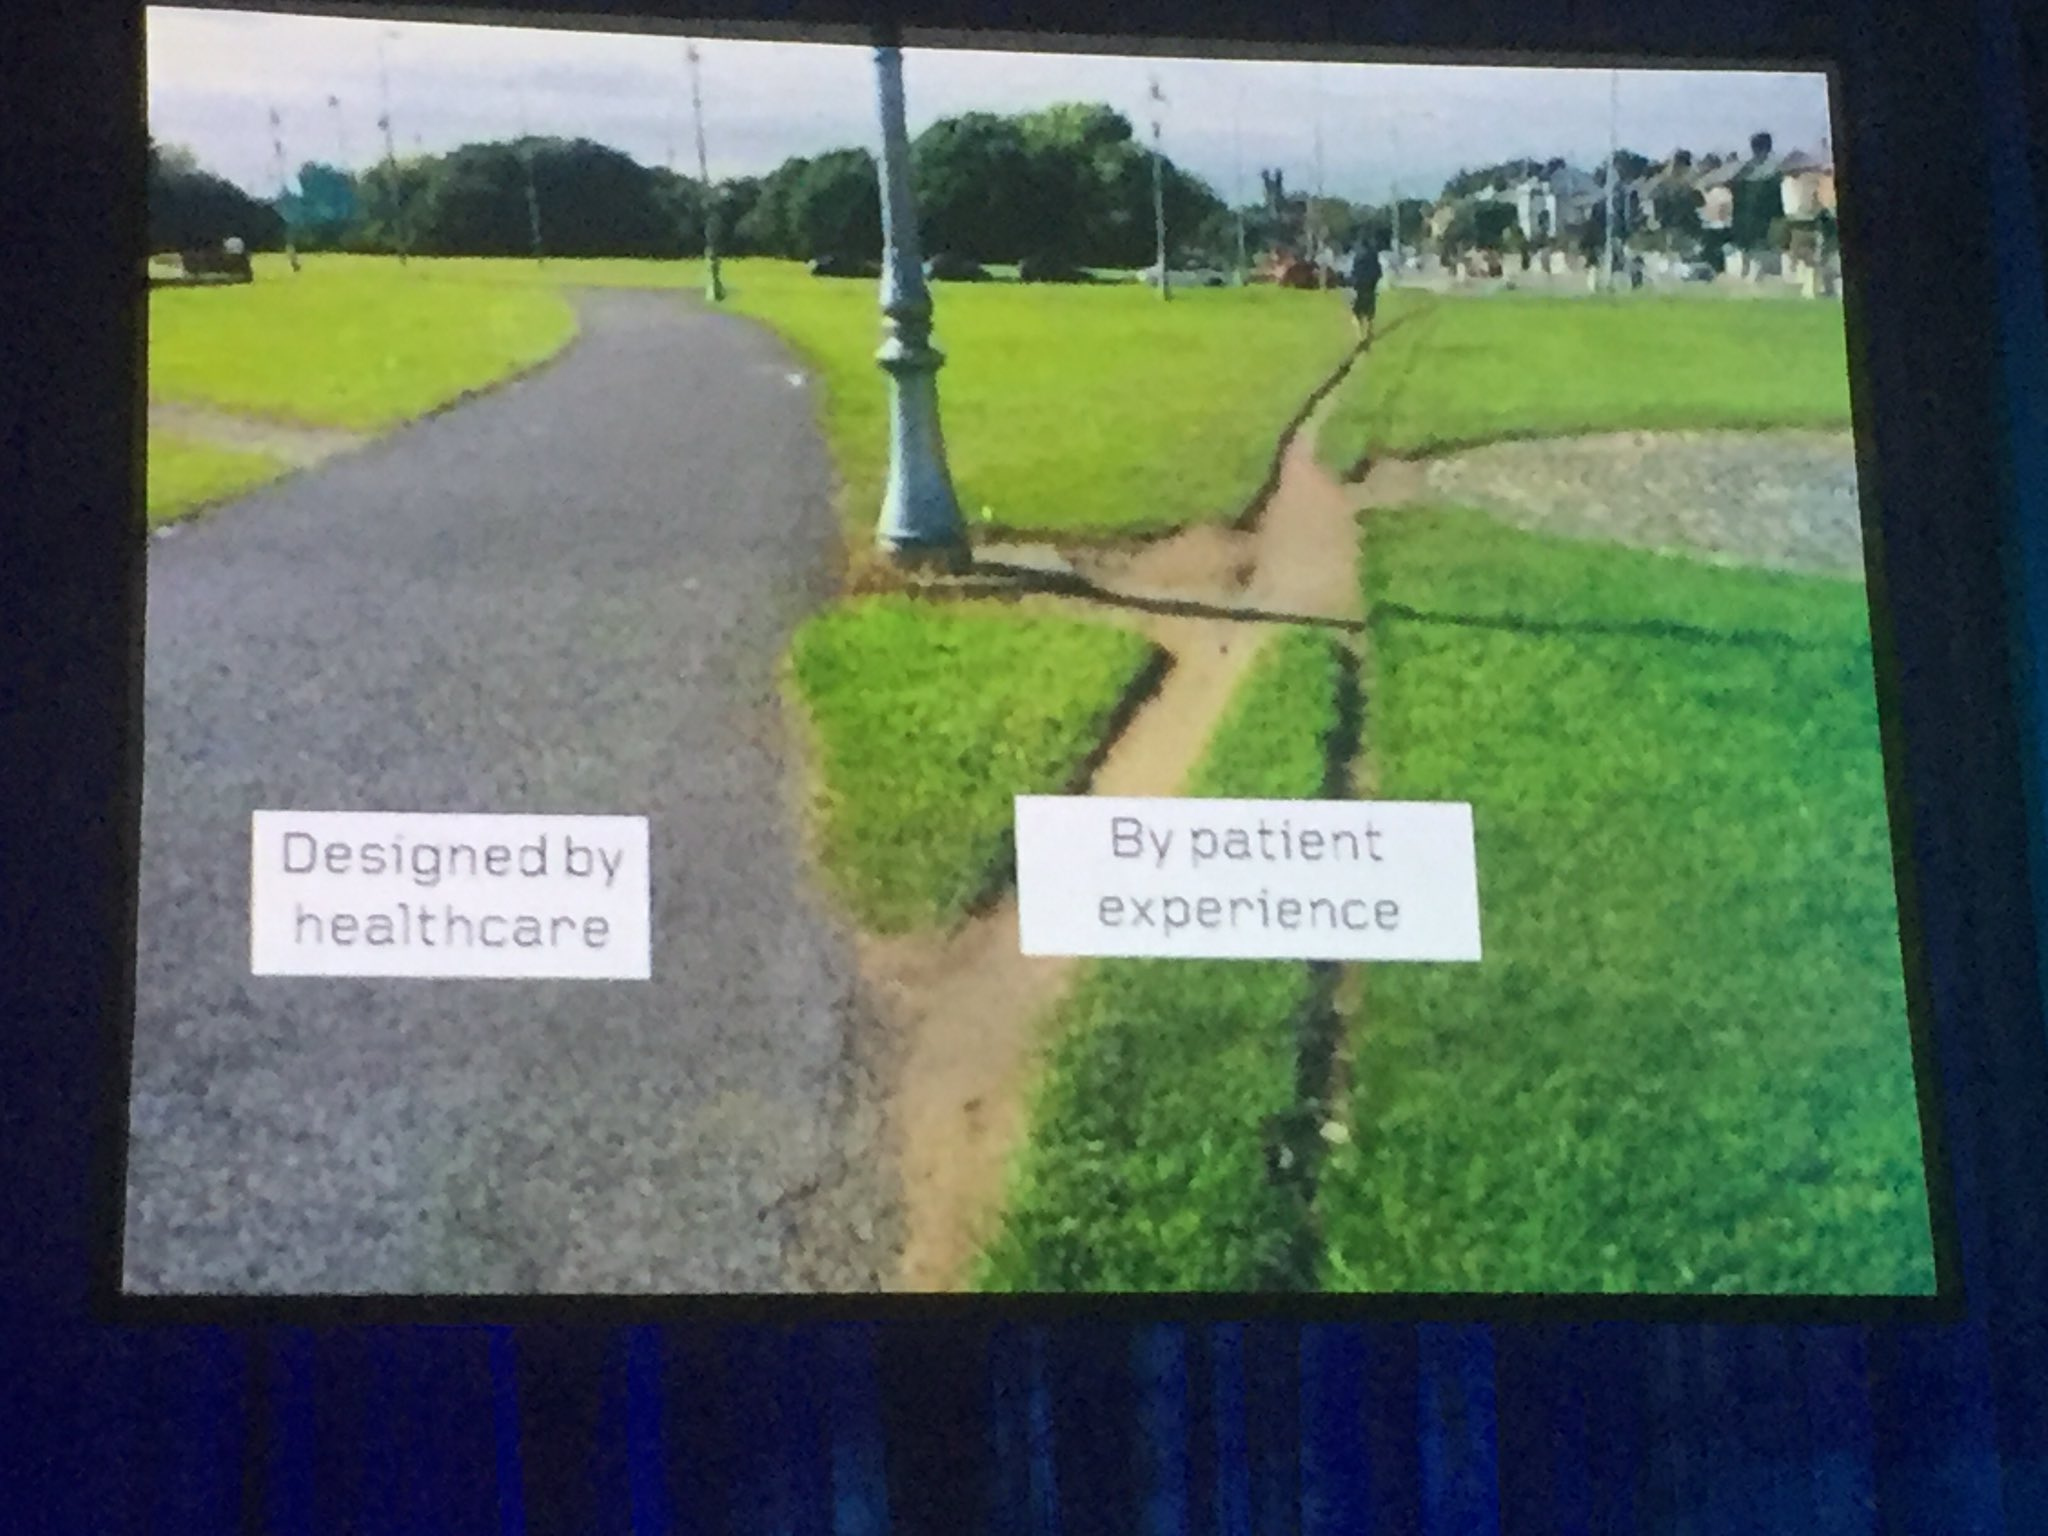 Sometimes patients don't take the path healthcare chooses for them. Be an enabler not a blocker.....#Quality2017 https://t.co/Nn5UlTEbVv